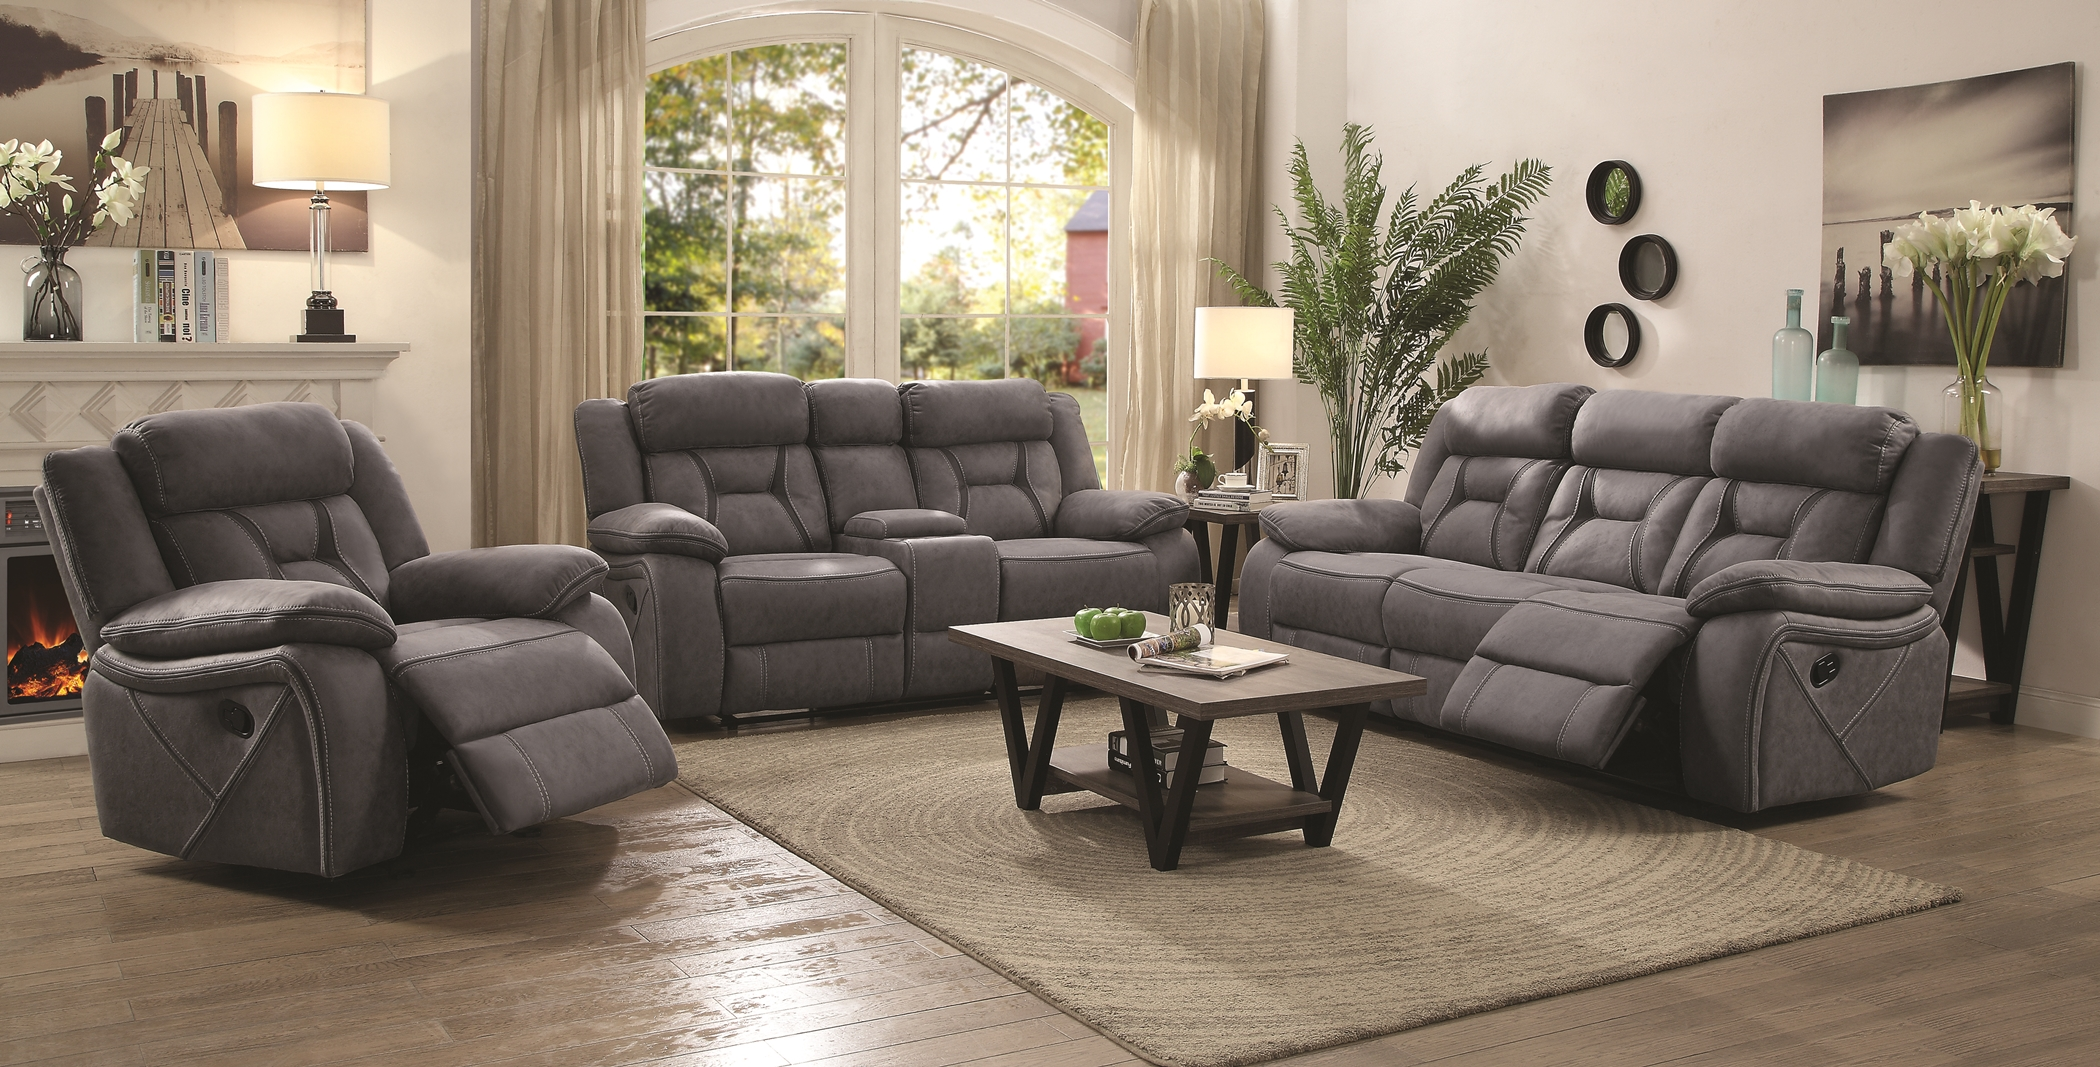 Houston Casual Stone Reclining Sofa & Love